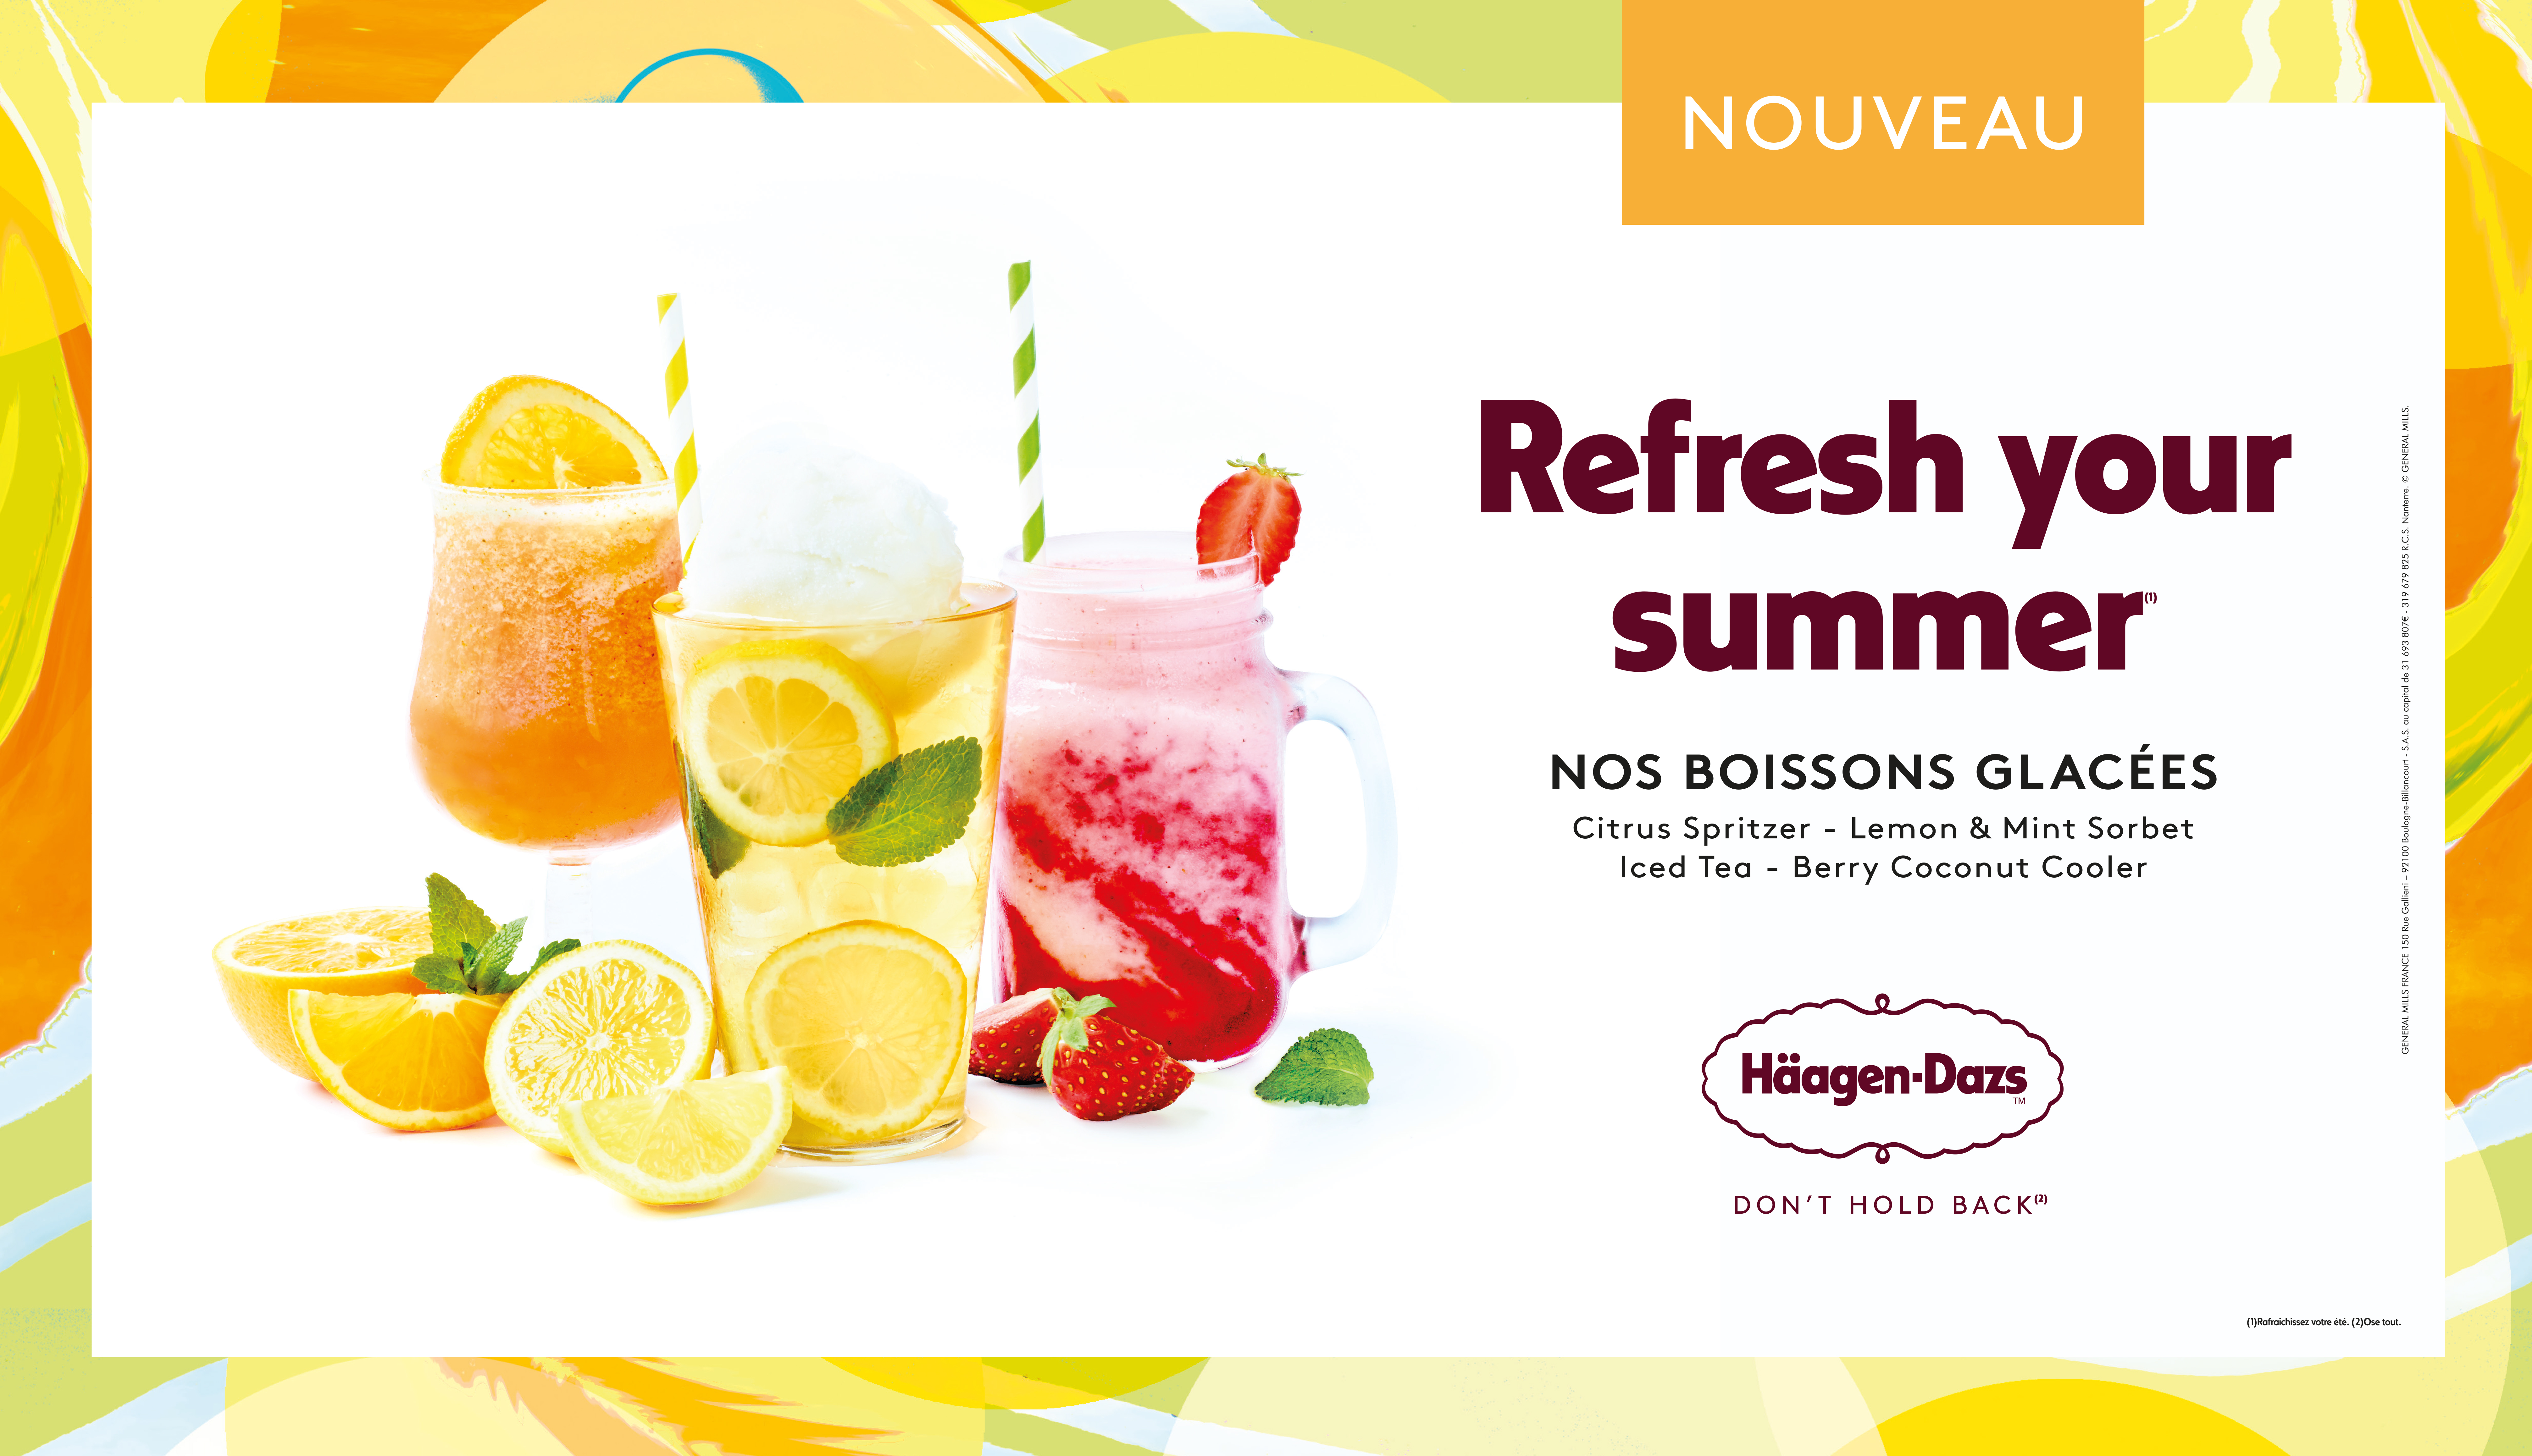 Time to Refresh your Summer